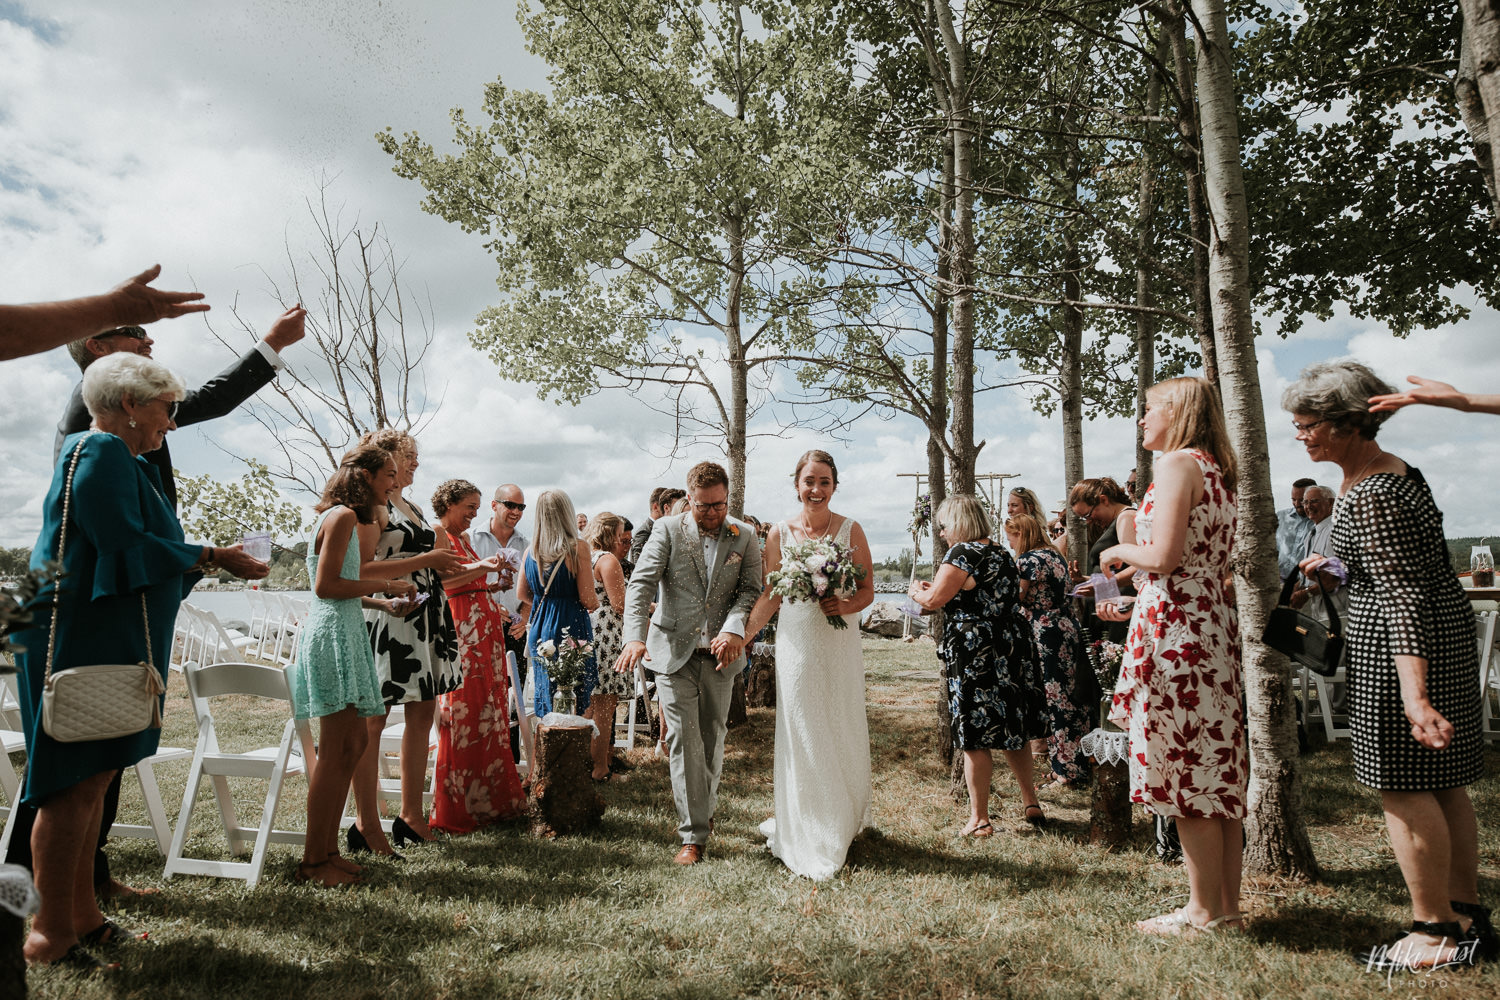 Wedding recessional with bird seed.